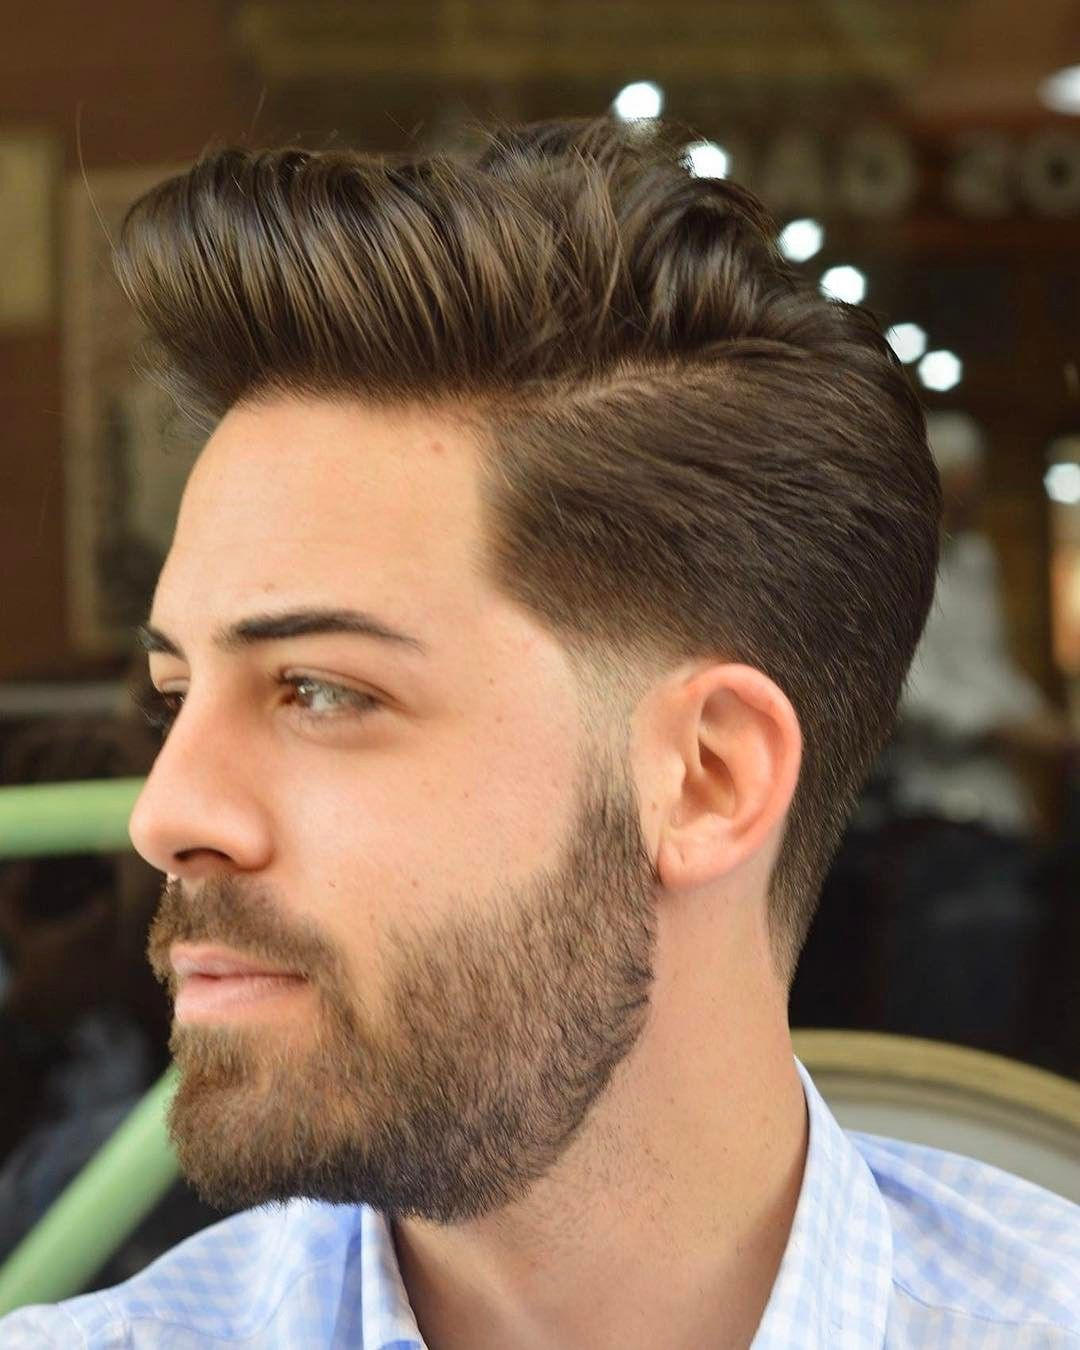 Classic Hairstyles For Men Cool Hairstyles For Men  Latest Hairstyles For Men 2017  Pinterest